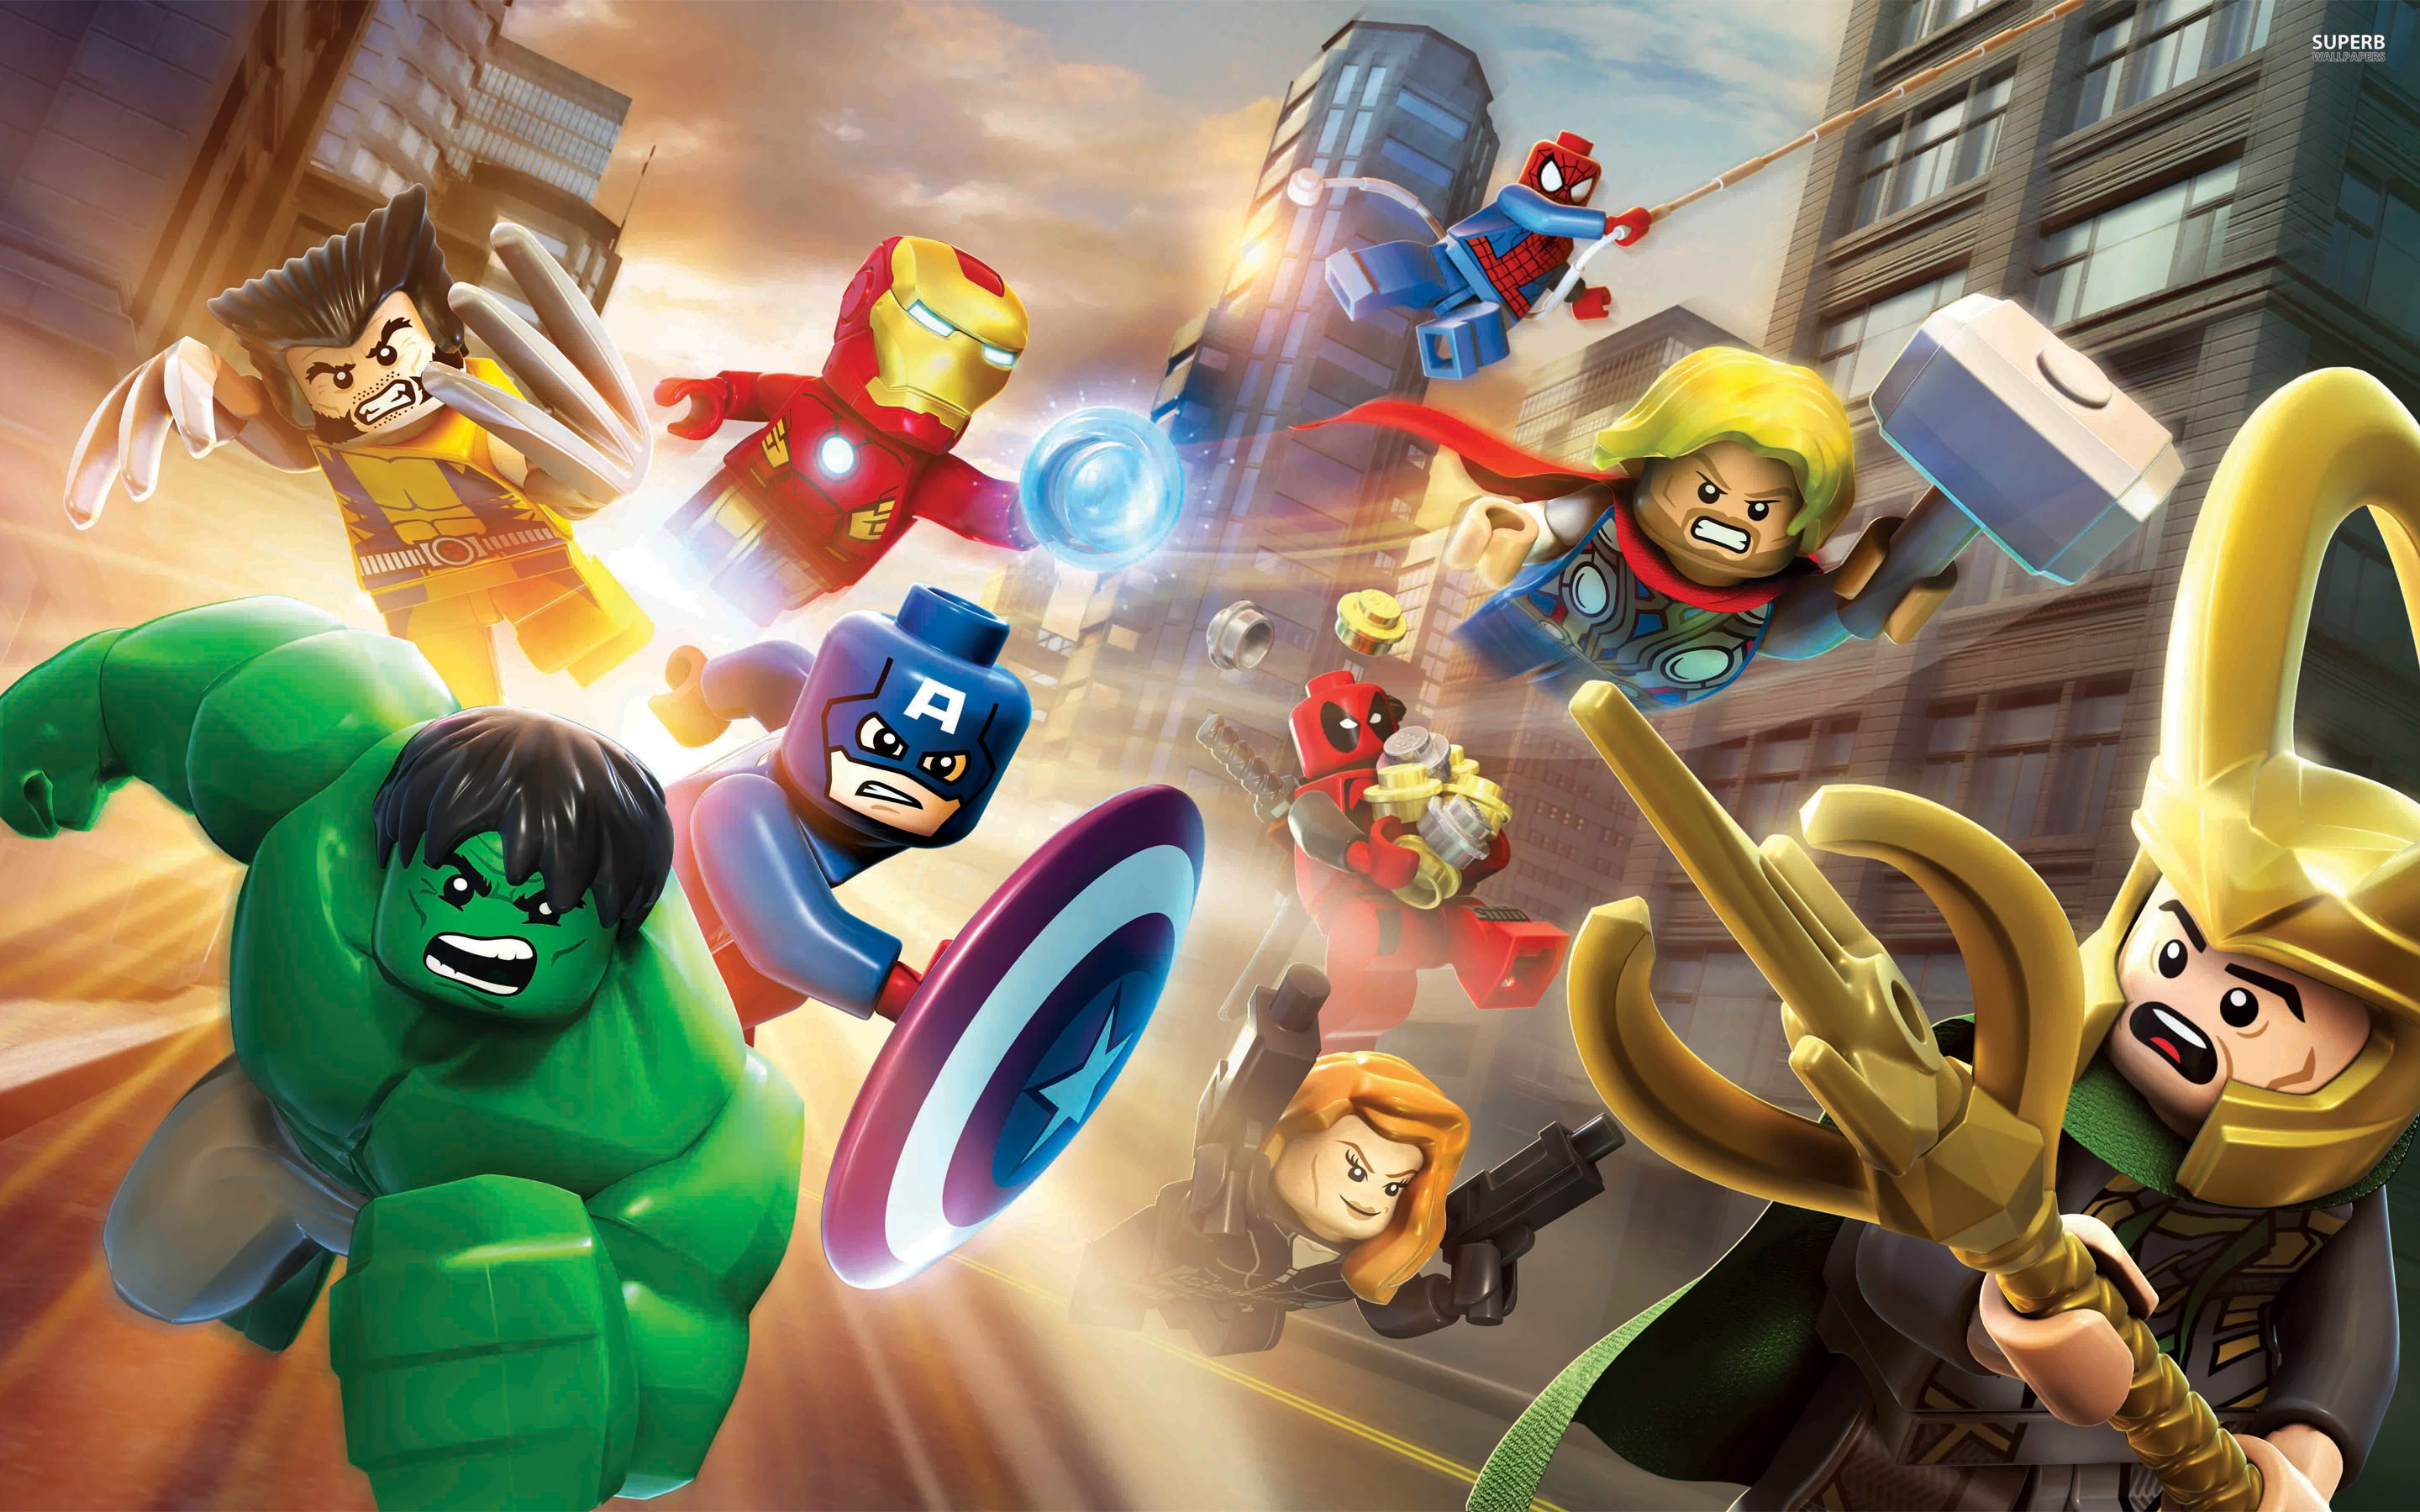 2880x1800 Lego Marvel Super Heroes Wallpaper HD Desktop Wallpaper, Instagram ...